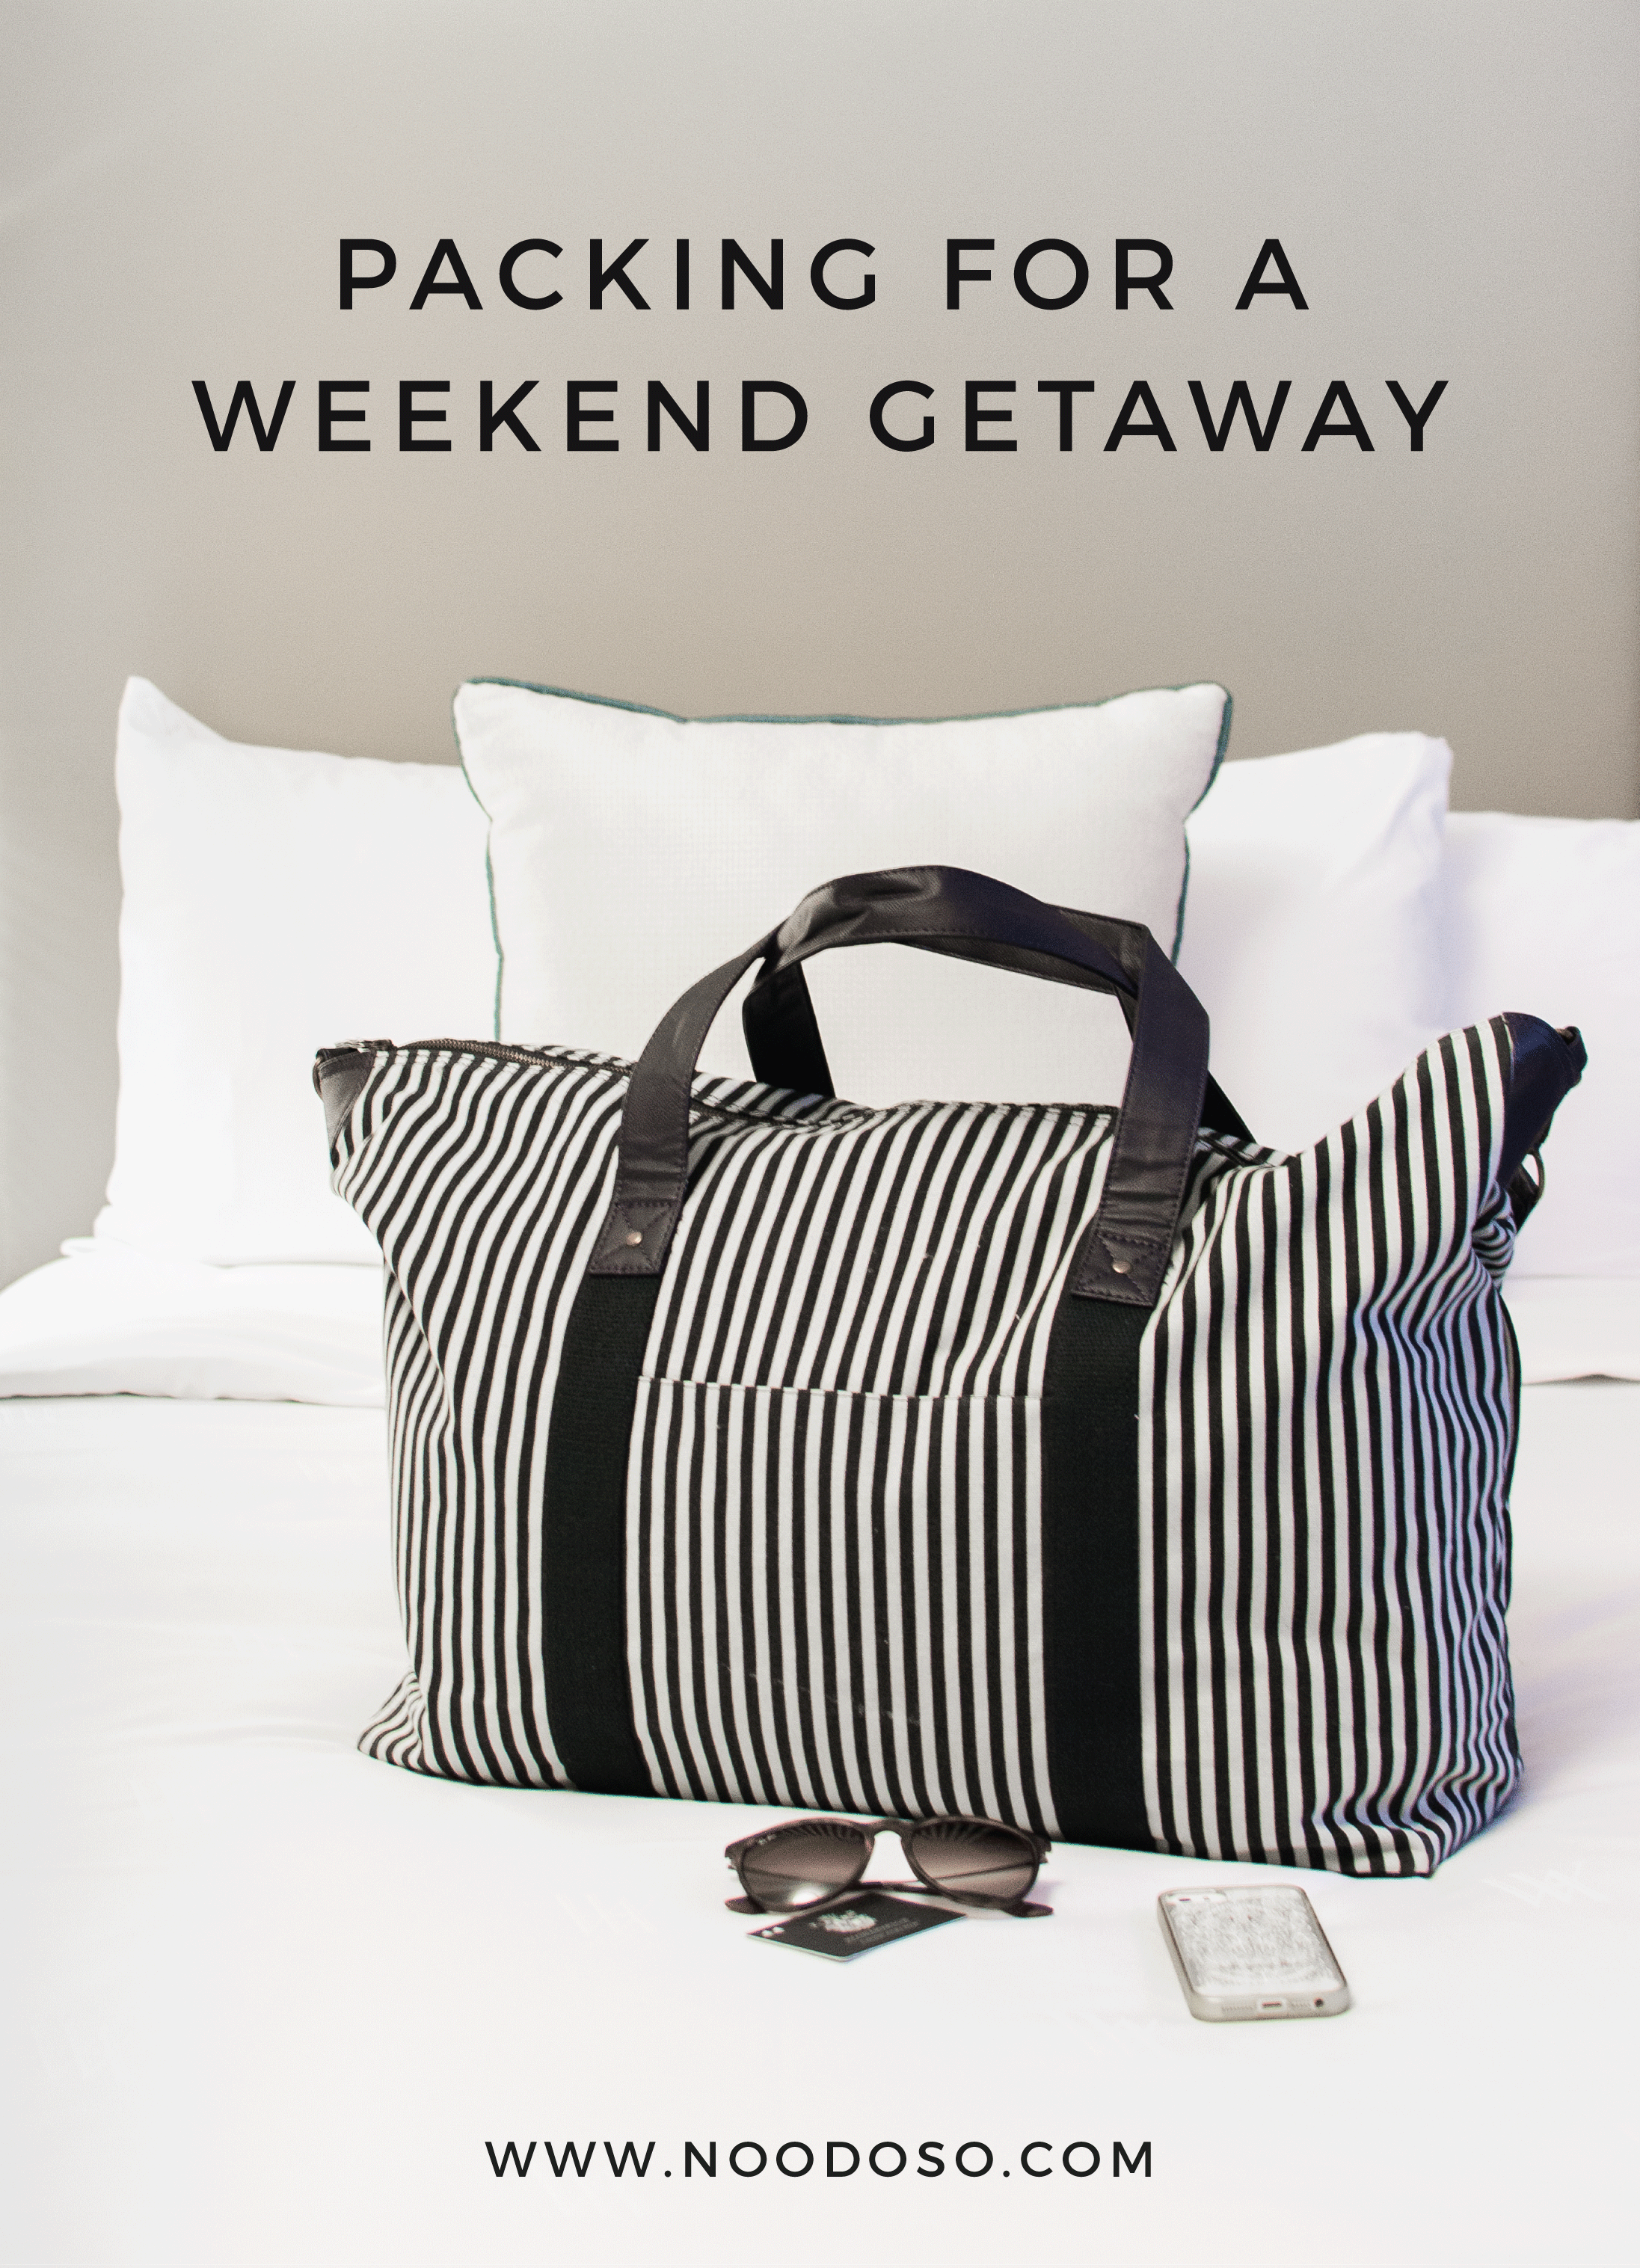 Packing for A Weekend Getaway - Noodoso